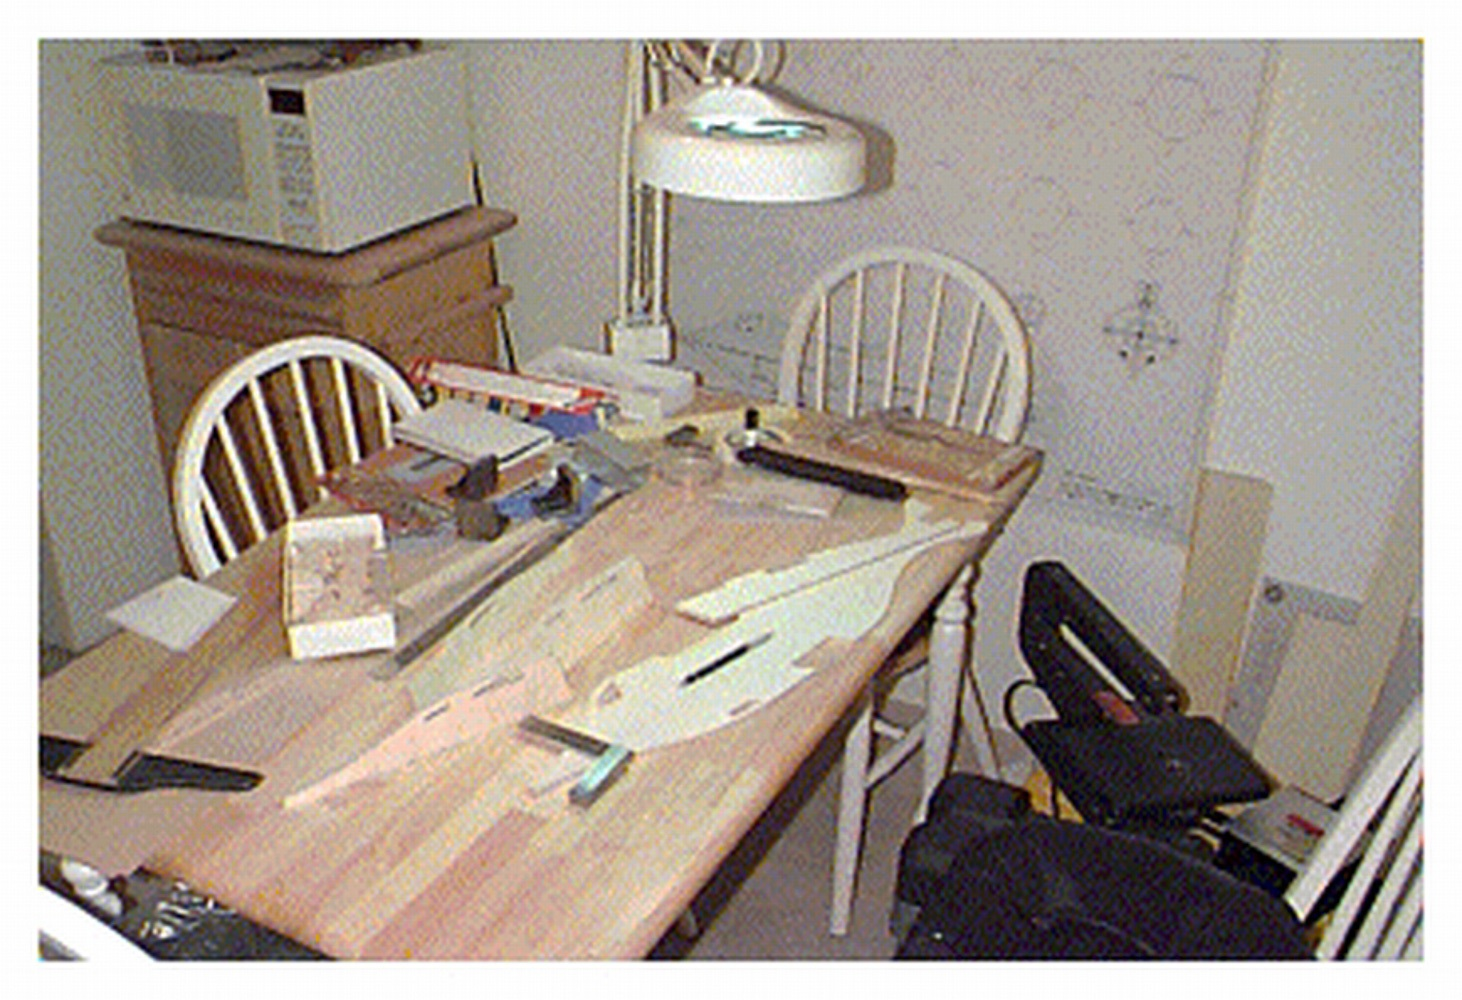 My kitchen table workshop with my CAD/CAM drawing on the wall and table top and the plywood keel pieces. Bass wood bulkheads are in the box